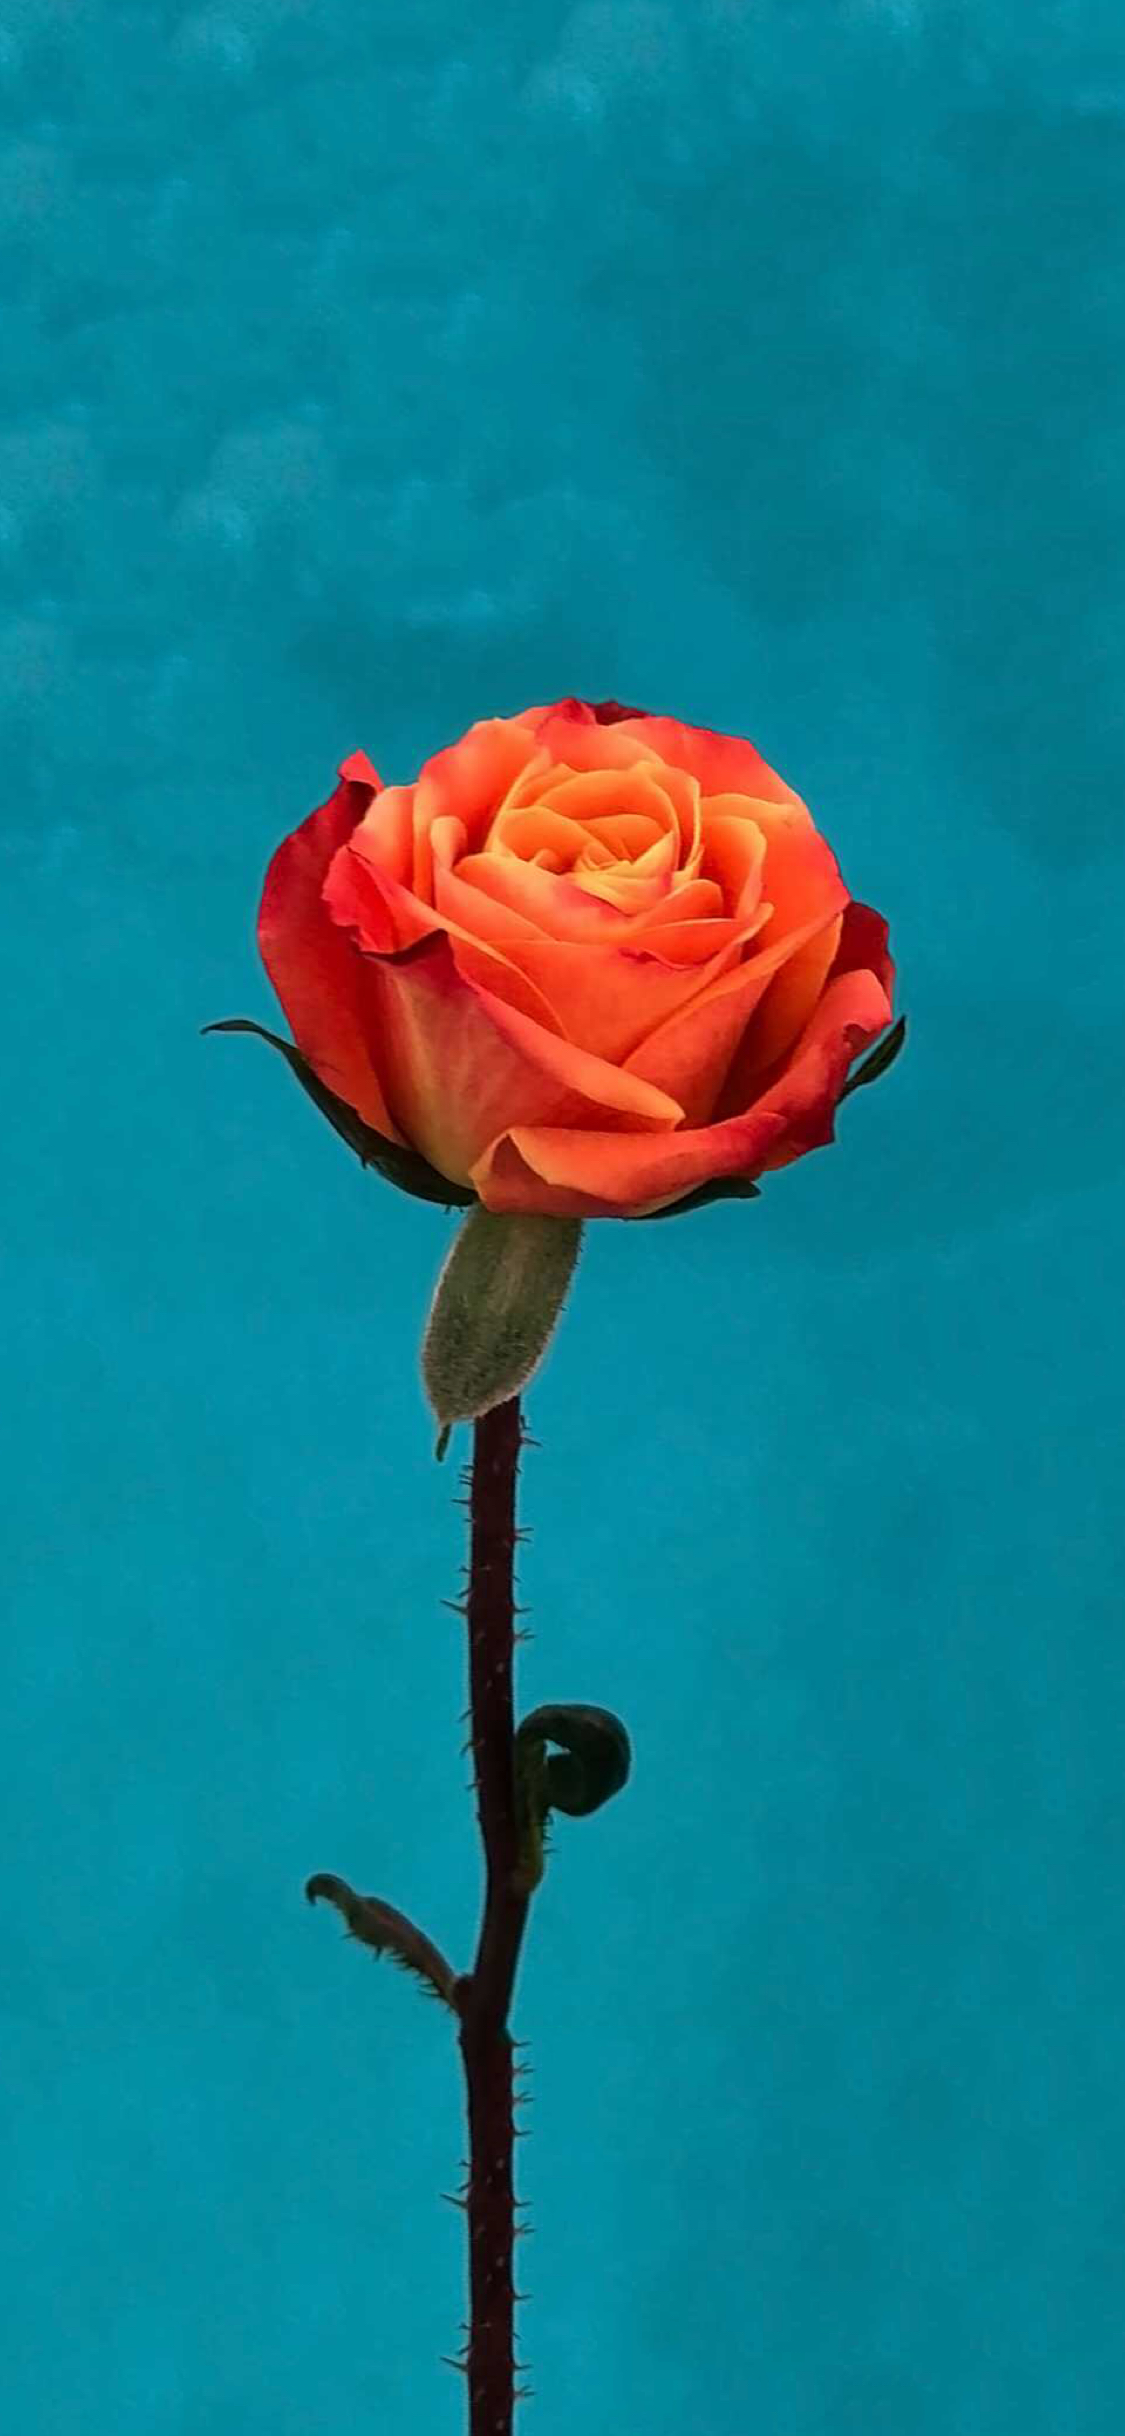 Ios 11 Orange Rose Wallpaper Wallpapers Central